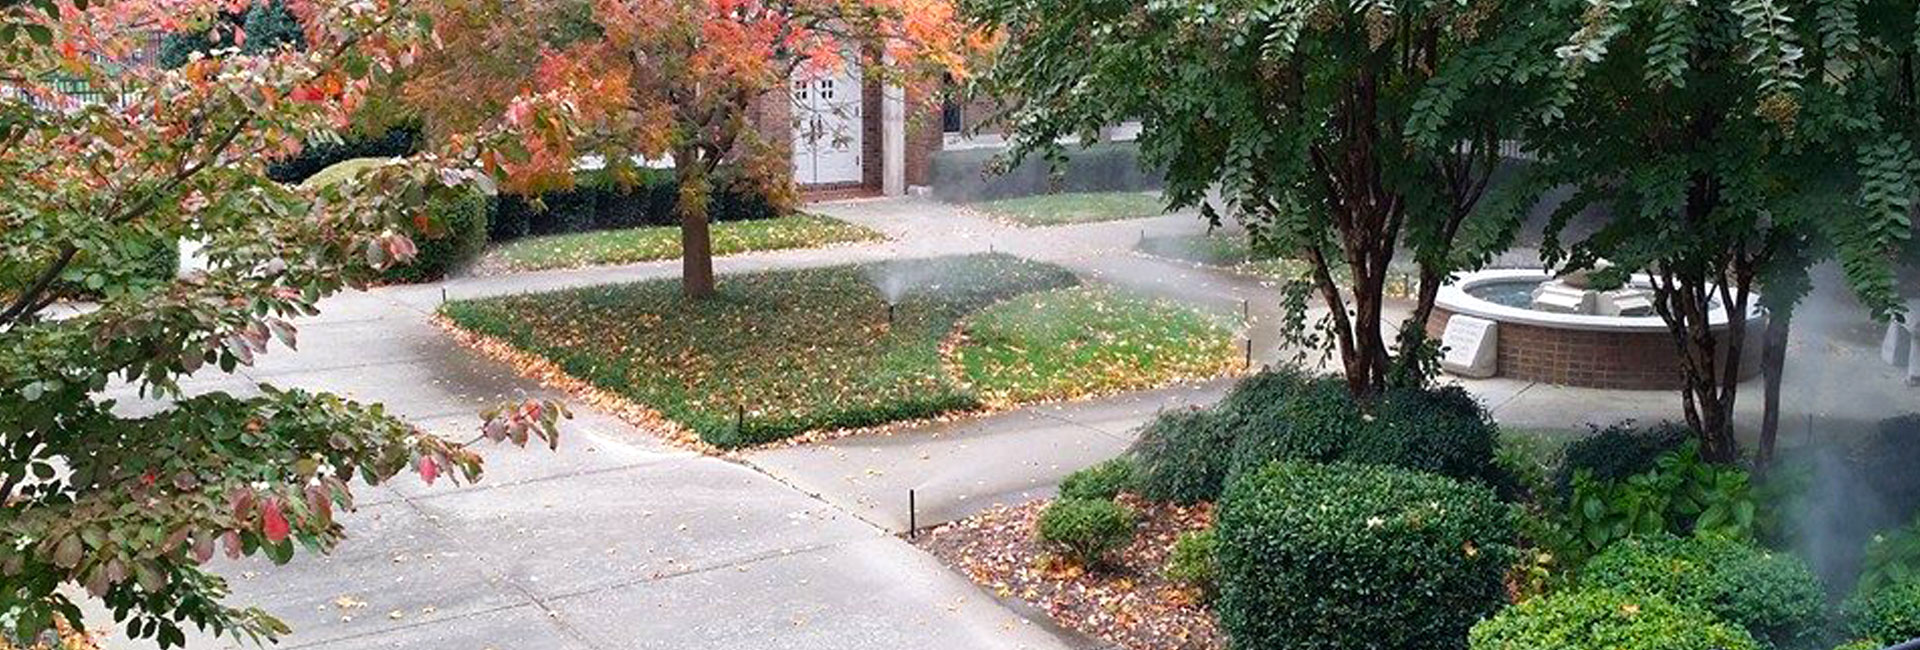 Lawn Irrigation Systems | Snow Removal Service - The Lawn